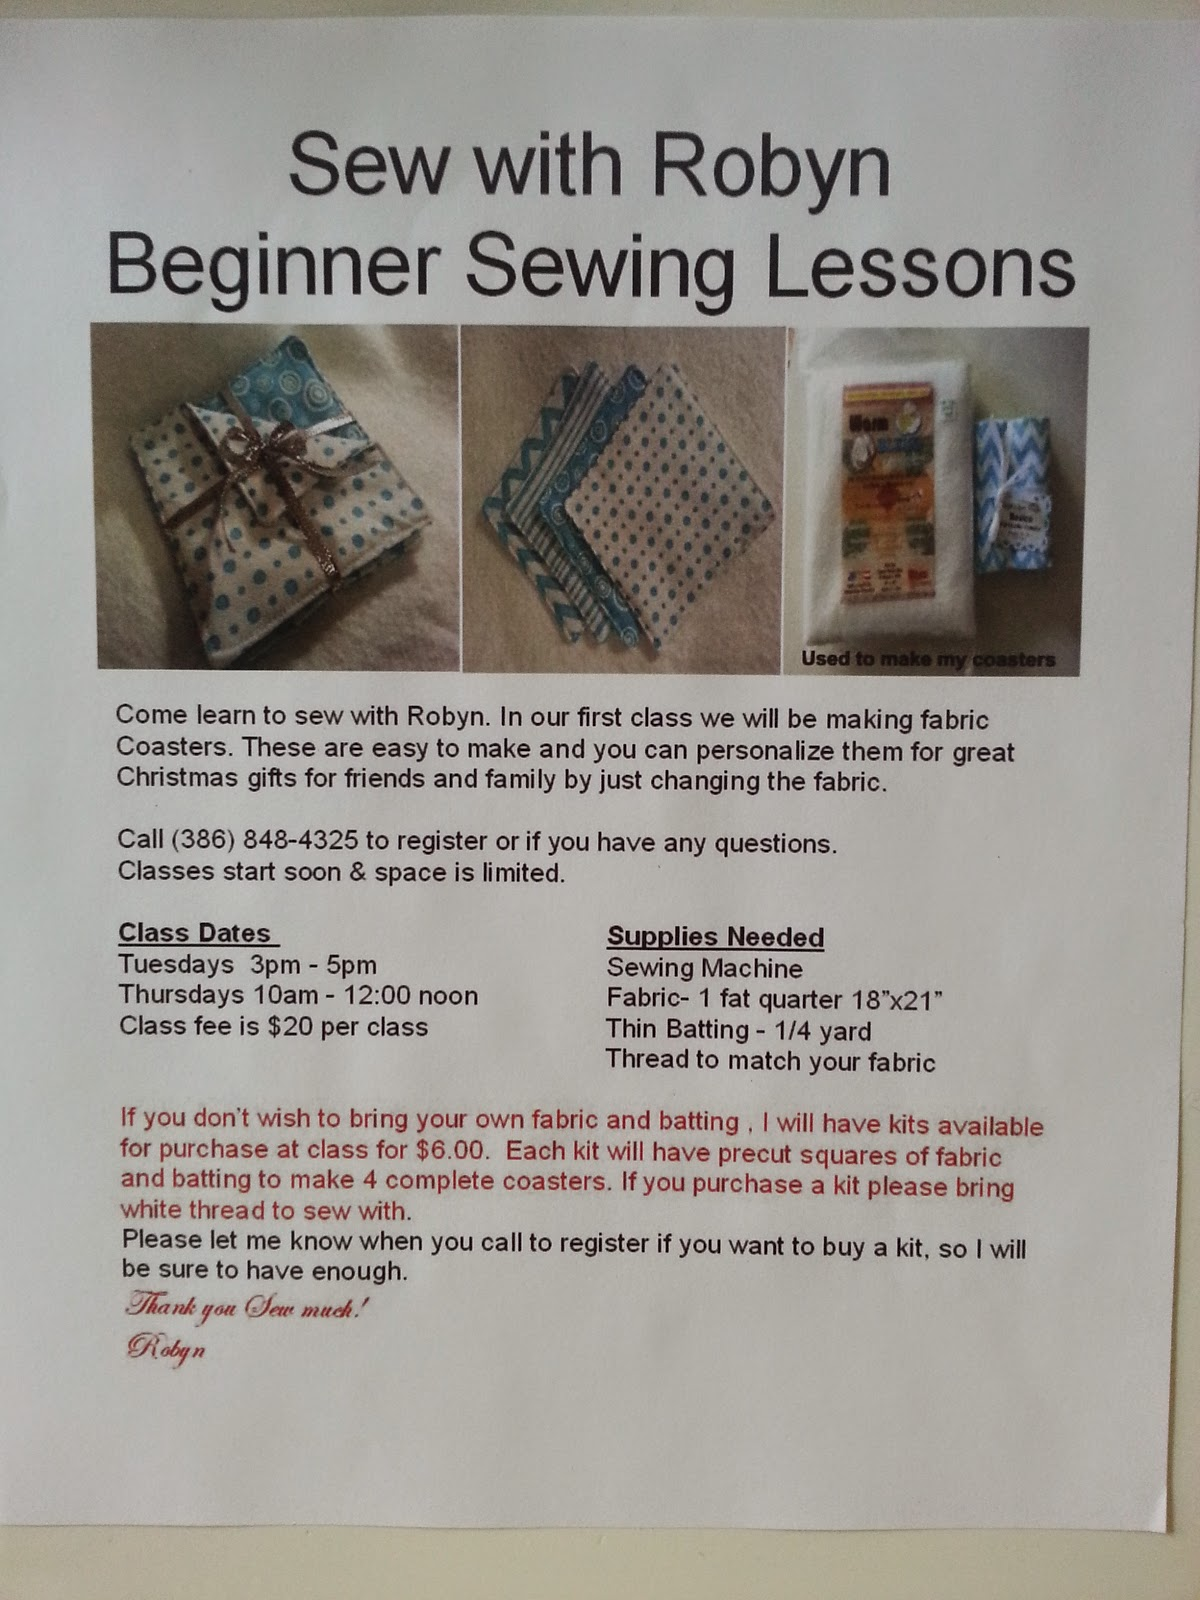 Love of Sewing: I am Teaching Beginner Sewing Lessons at